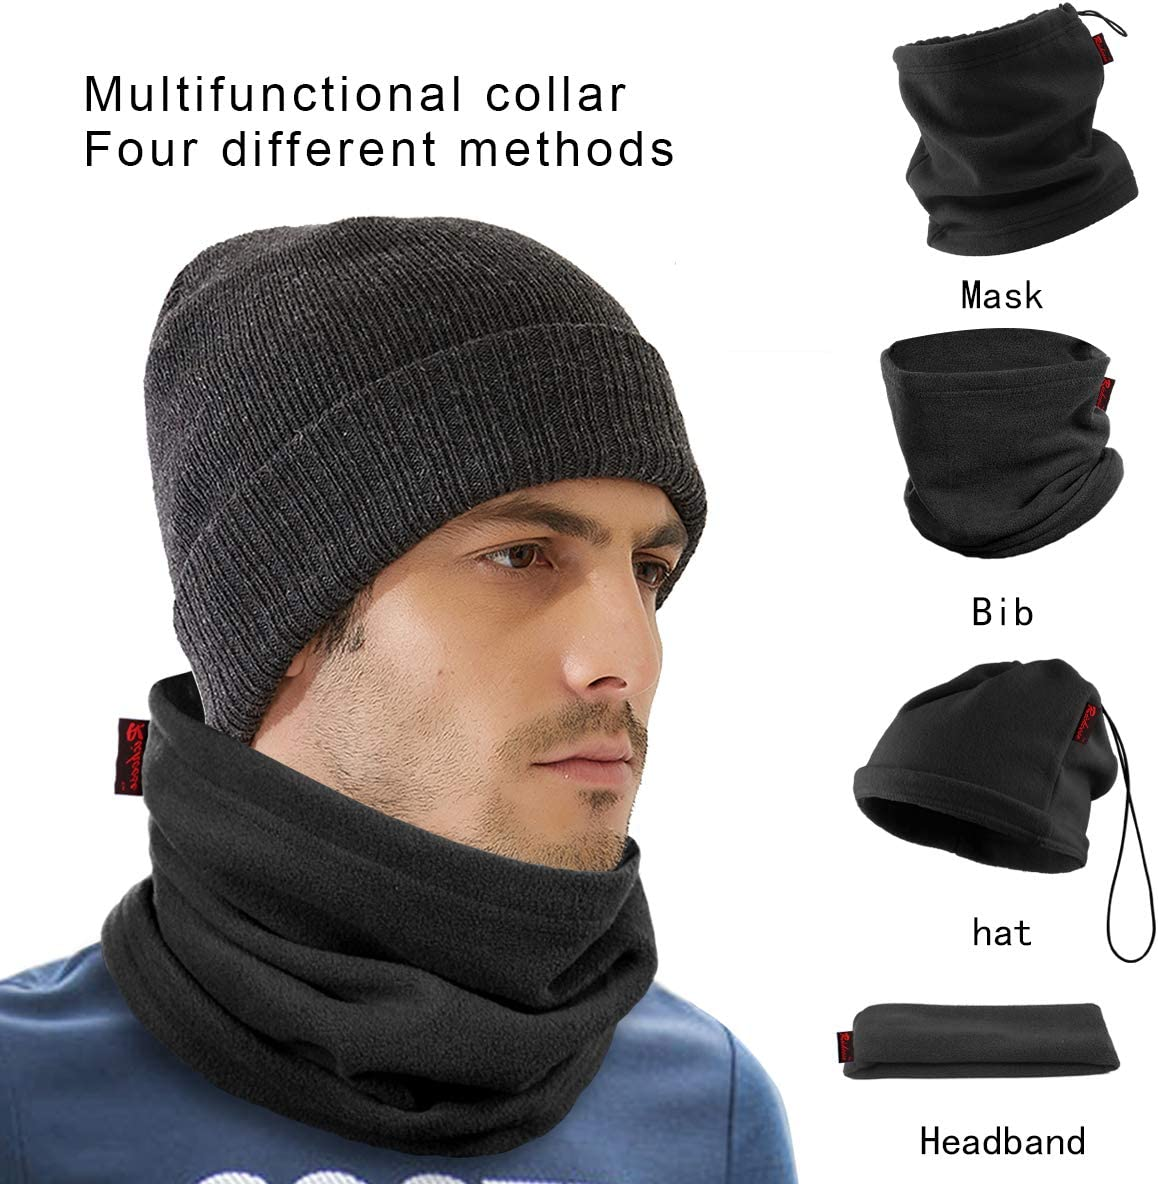 Wisolt Snood Neck Warmer Scarf 3 in 1 Face Warm Mask CS Neck Warmer Beanie Hat Scarf Hood for Cycling Hiking Sking,Unsex